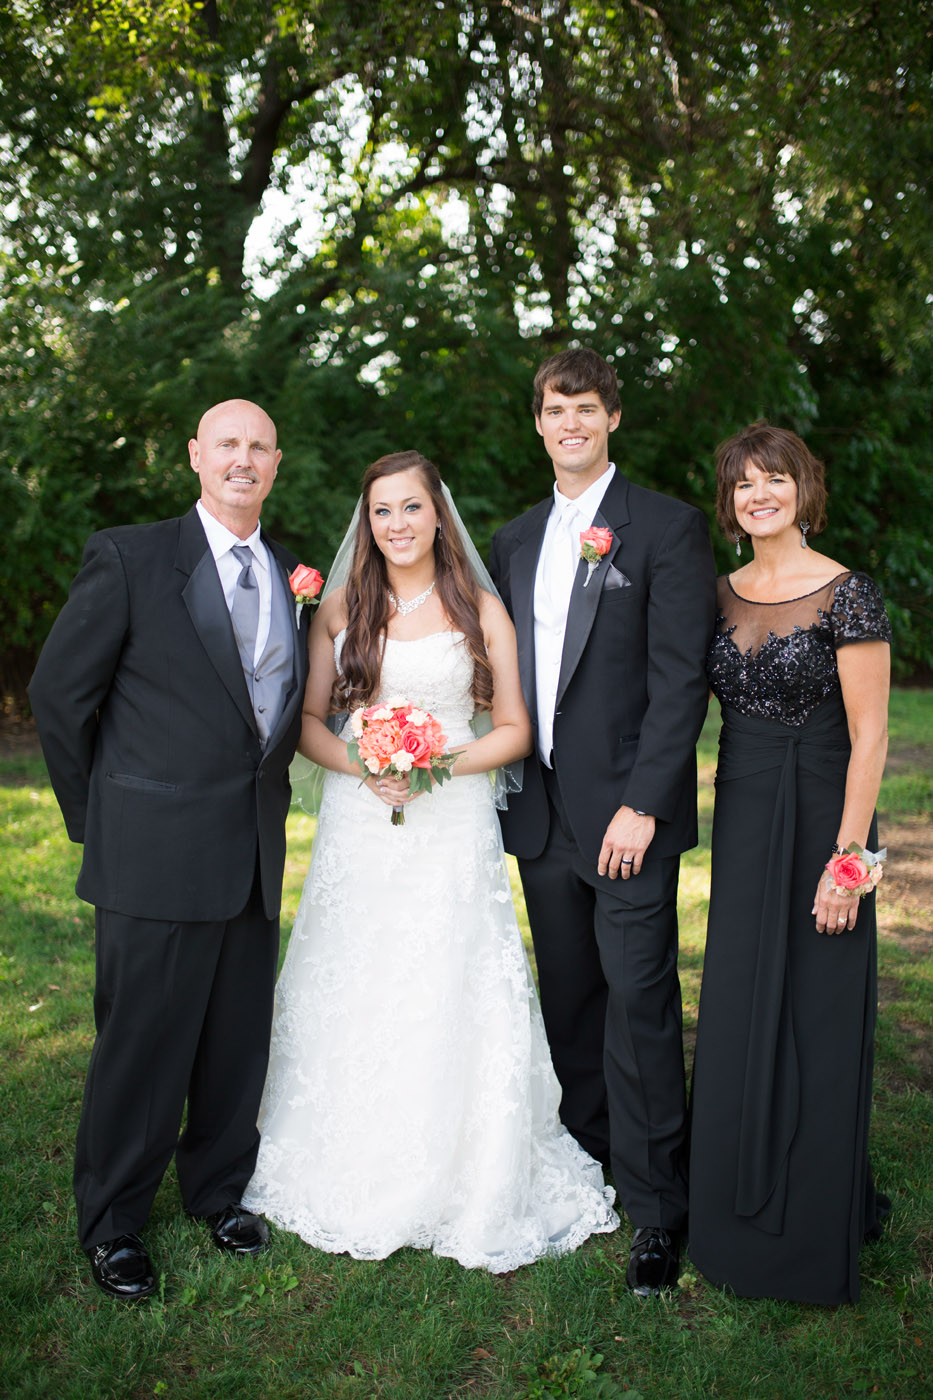 Sinclair Wedding 1 1371.jpg